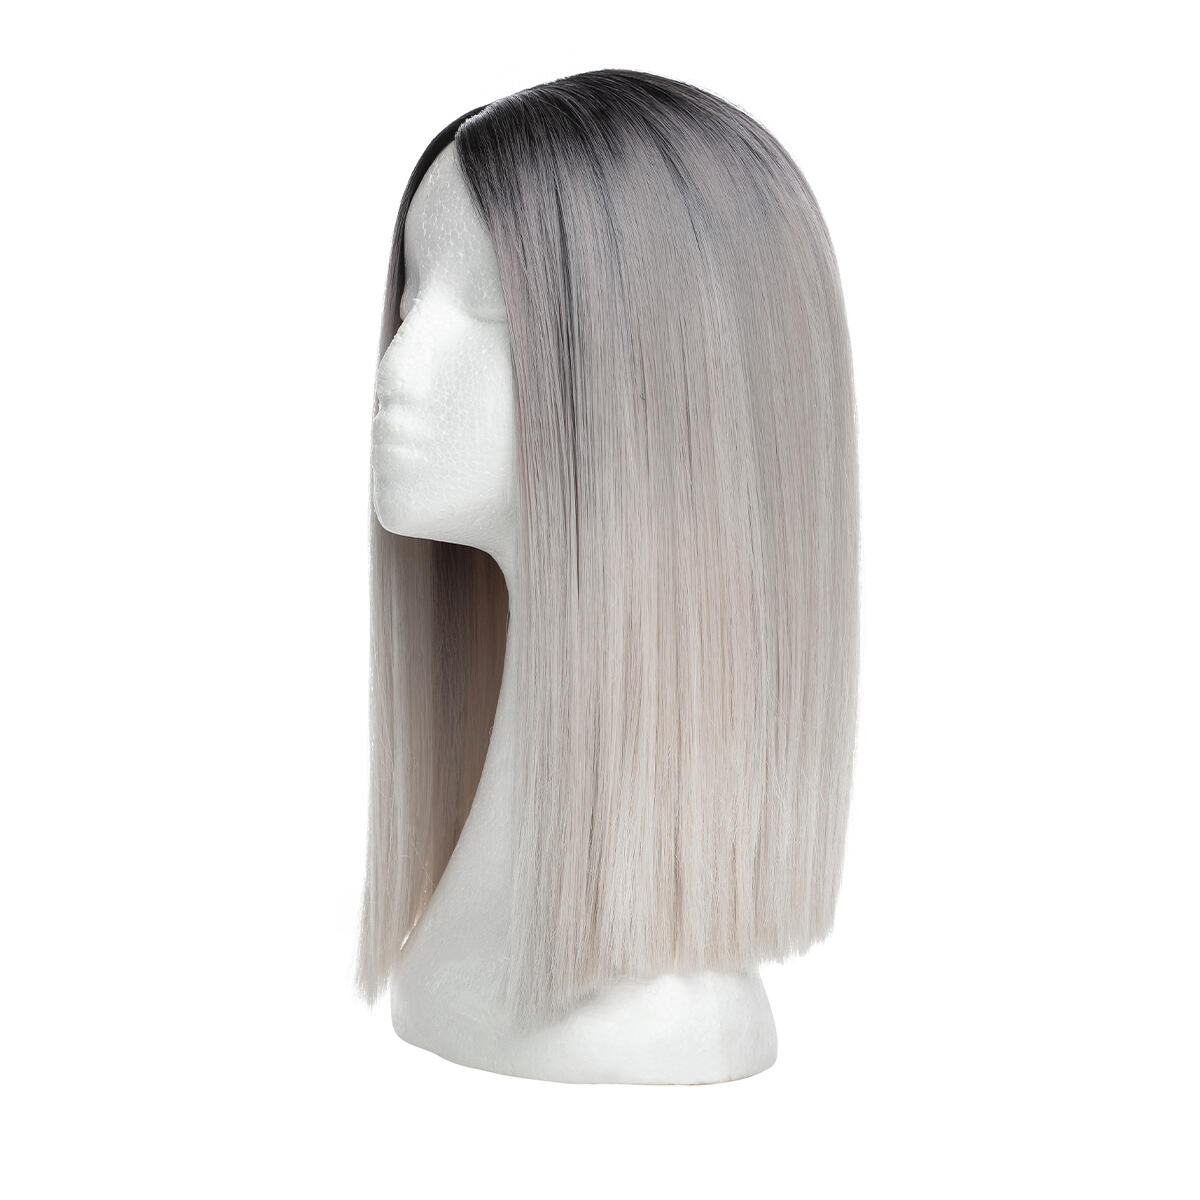 Lace Front Perücke - Straight Short O1.2/10.5 Black Brown/Grey 35 cm